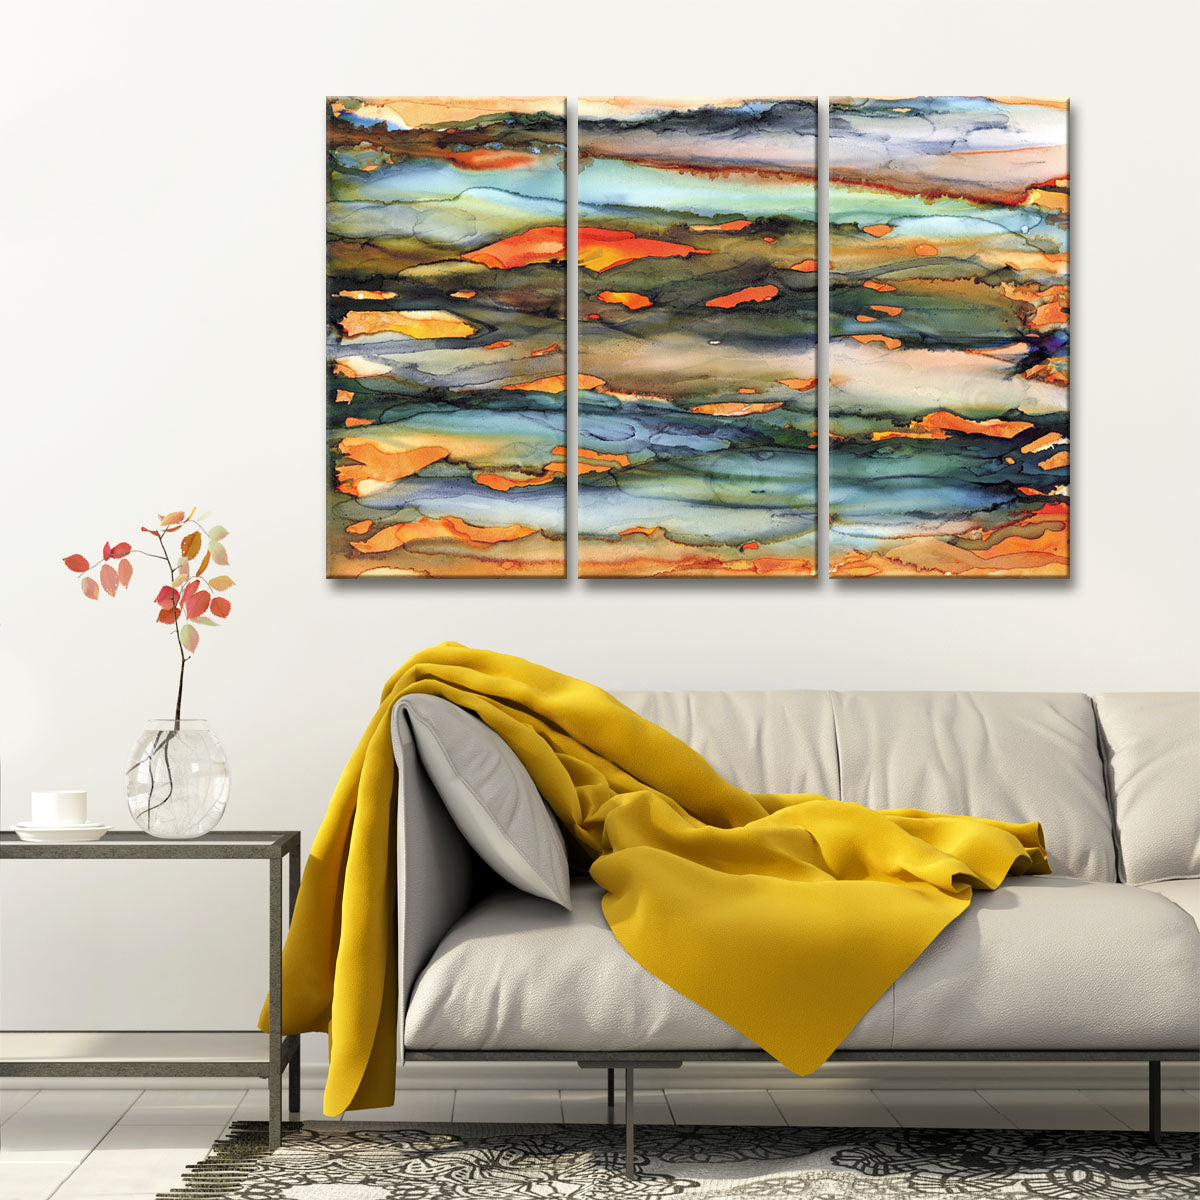 Methane 3 Pc Wrapped Canvas Abstract Wall Art Set